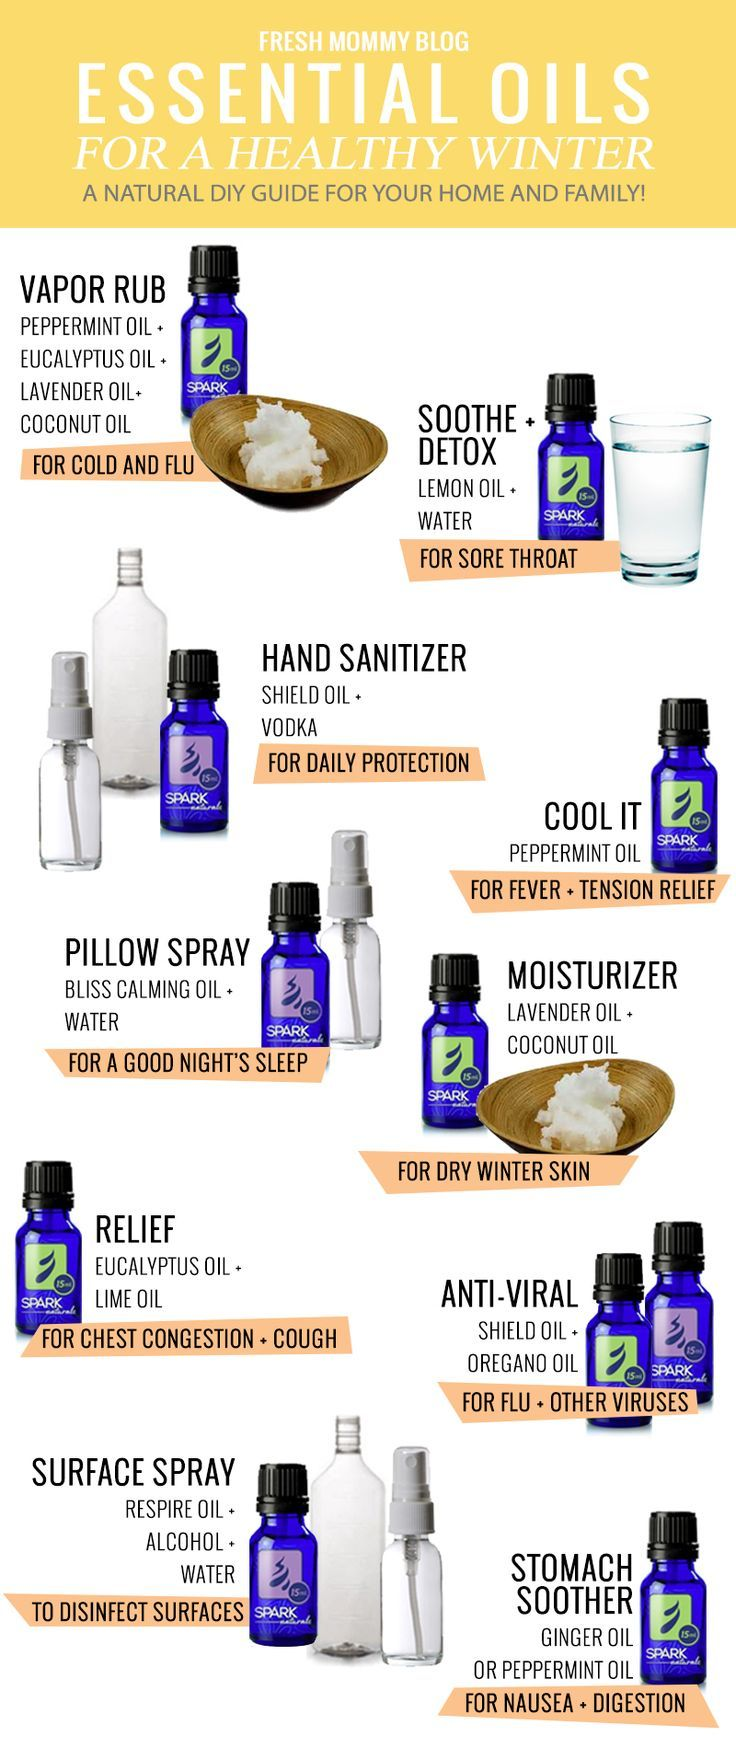 60 Best Essential Oil Guide Images On Pinterest Aromatherapy Essential Oils And Natural Remedies